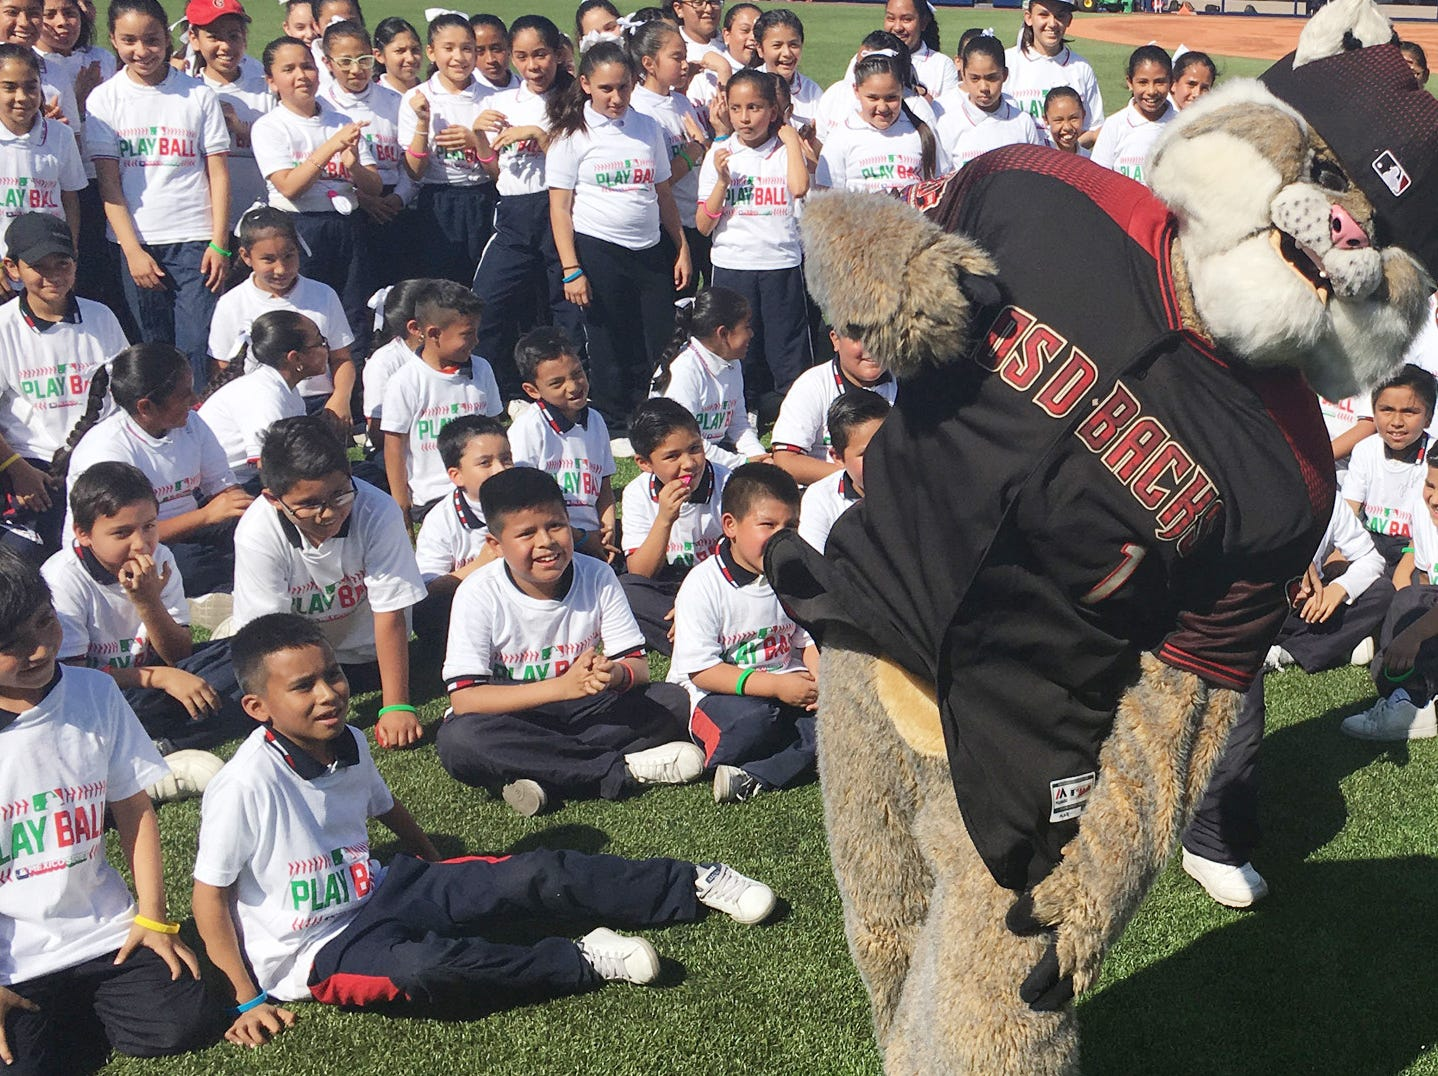 D. Baxter the Bobcat, the Arizona Diamondbacks team mascot, hams it up for children who participated in a Major League Baseball event inside the stadium in Monterrey, Mexico.